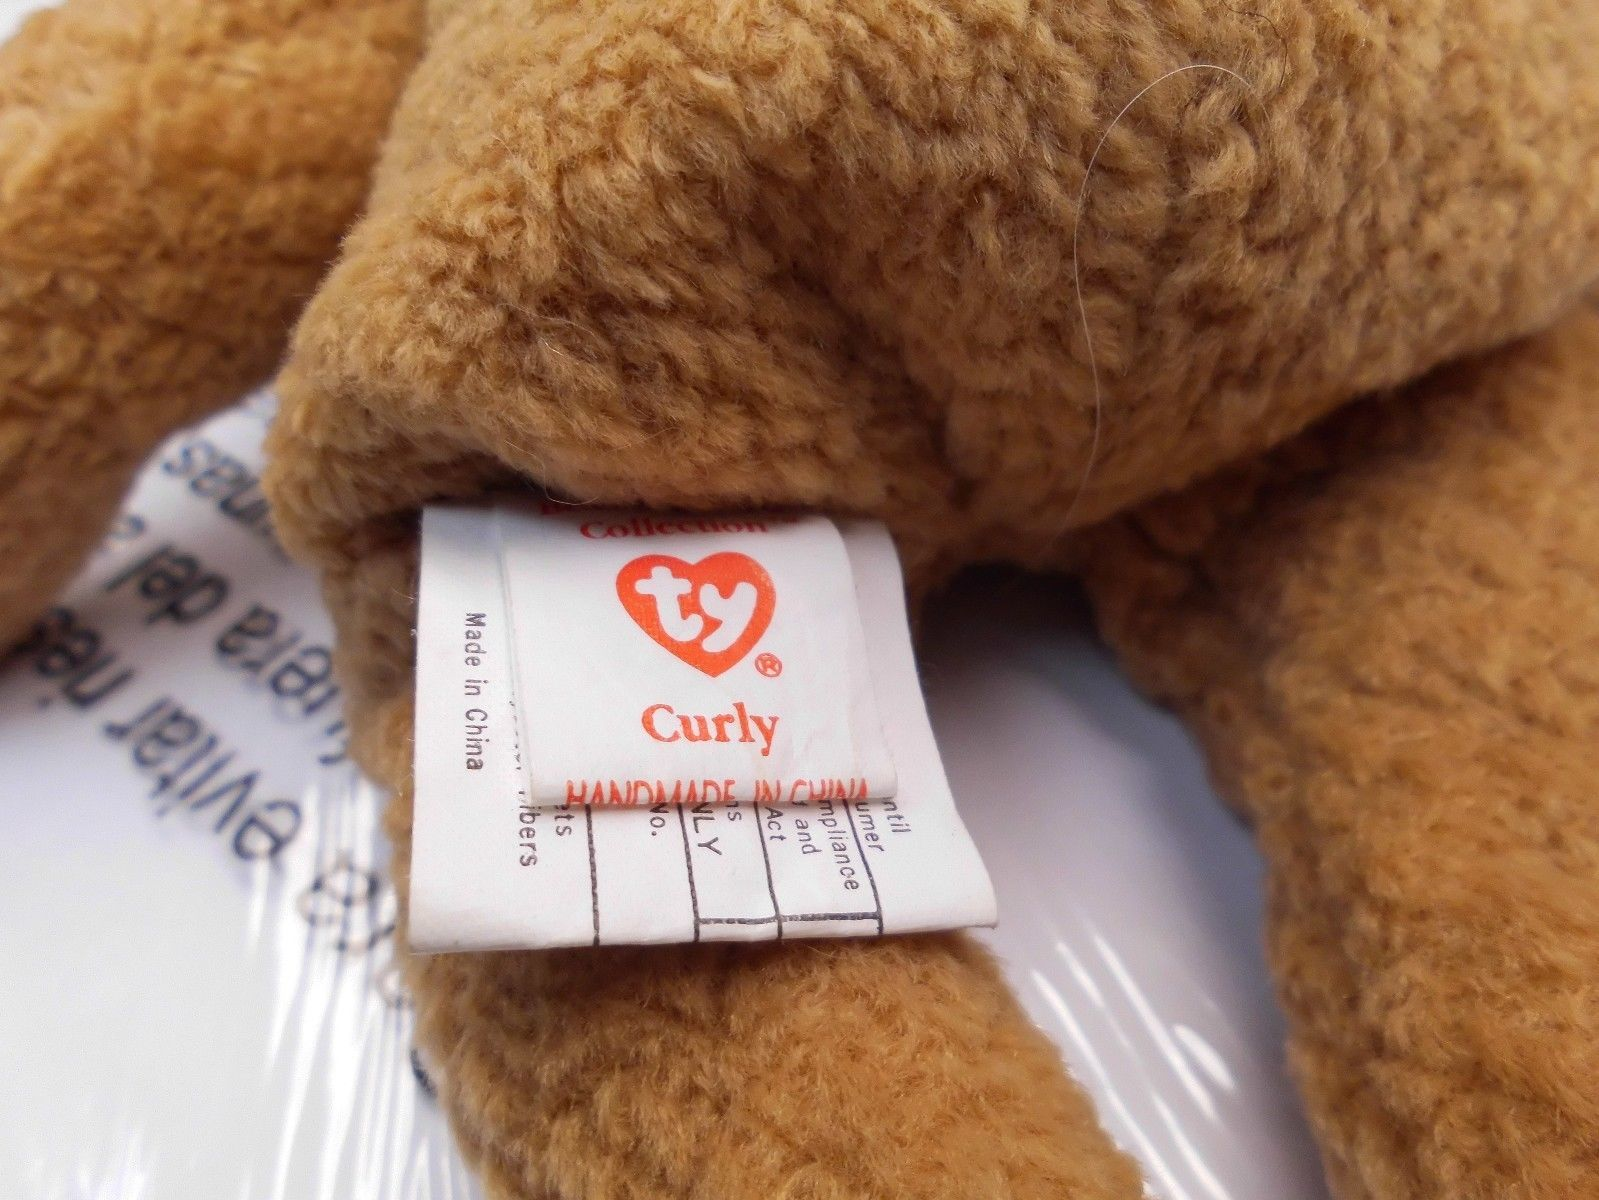 Rare Ty Beanie Babies Curly, Double Tush Tag and other errors image 2